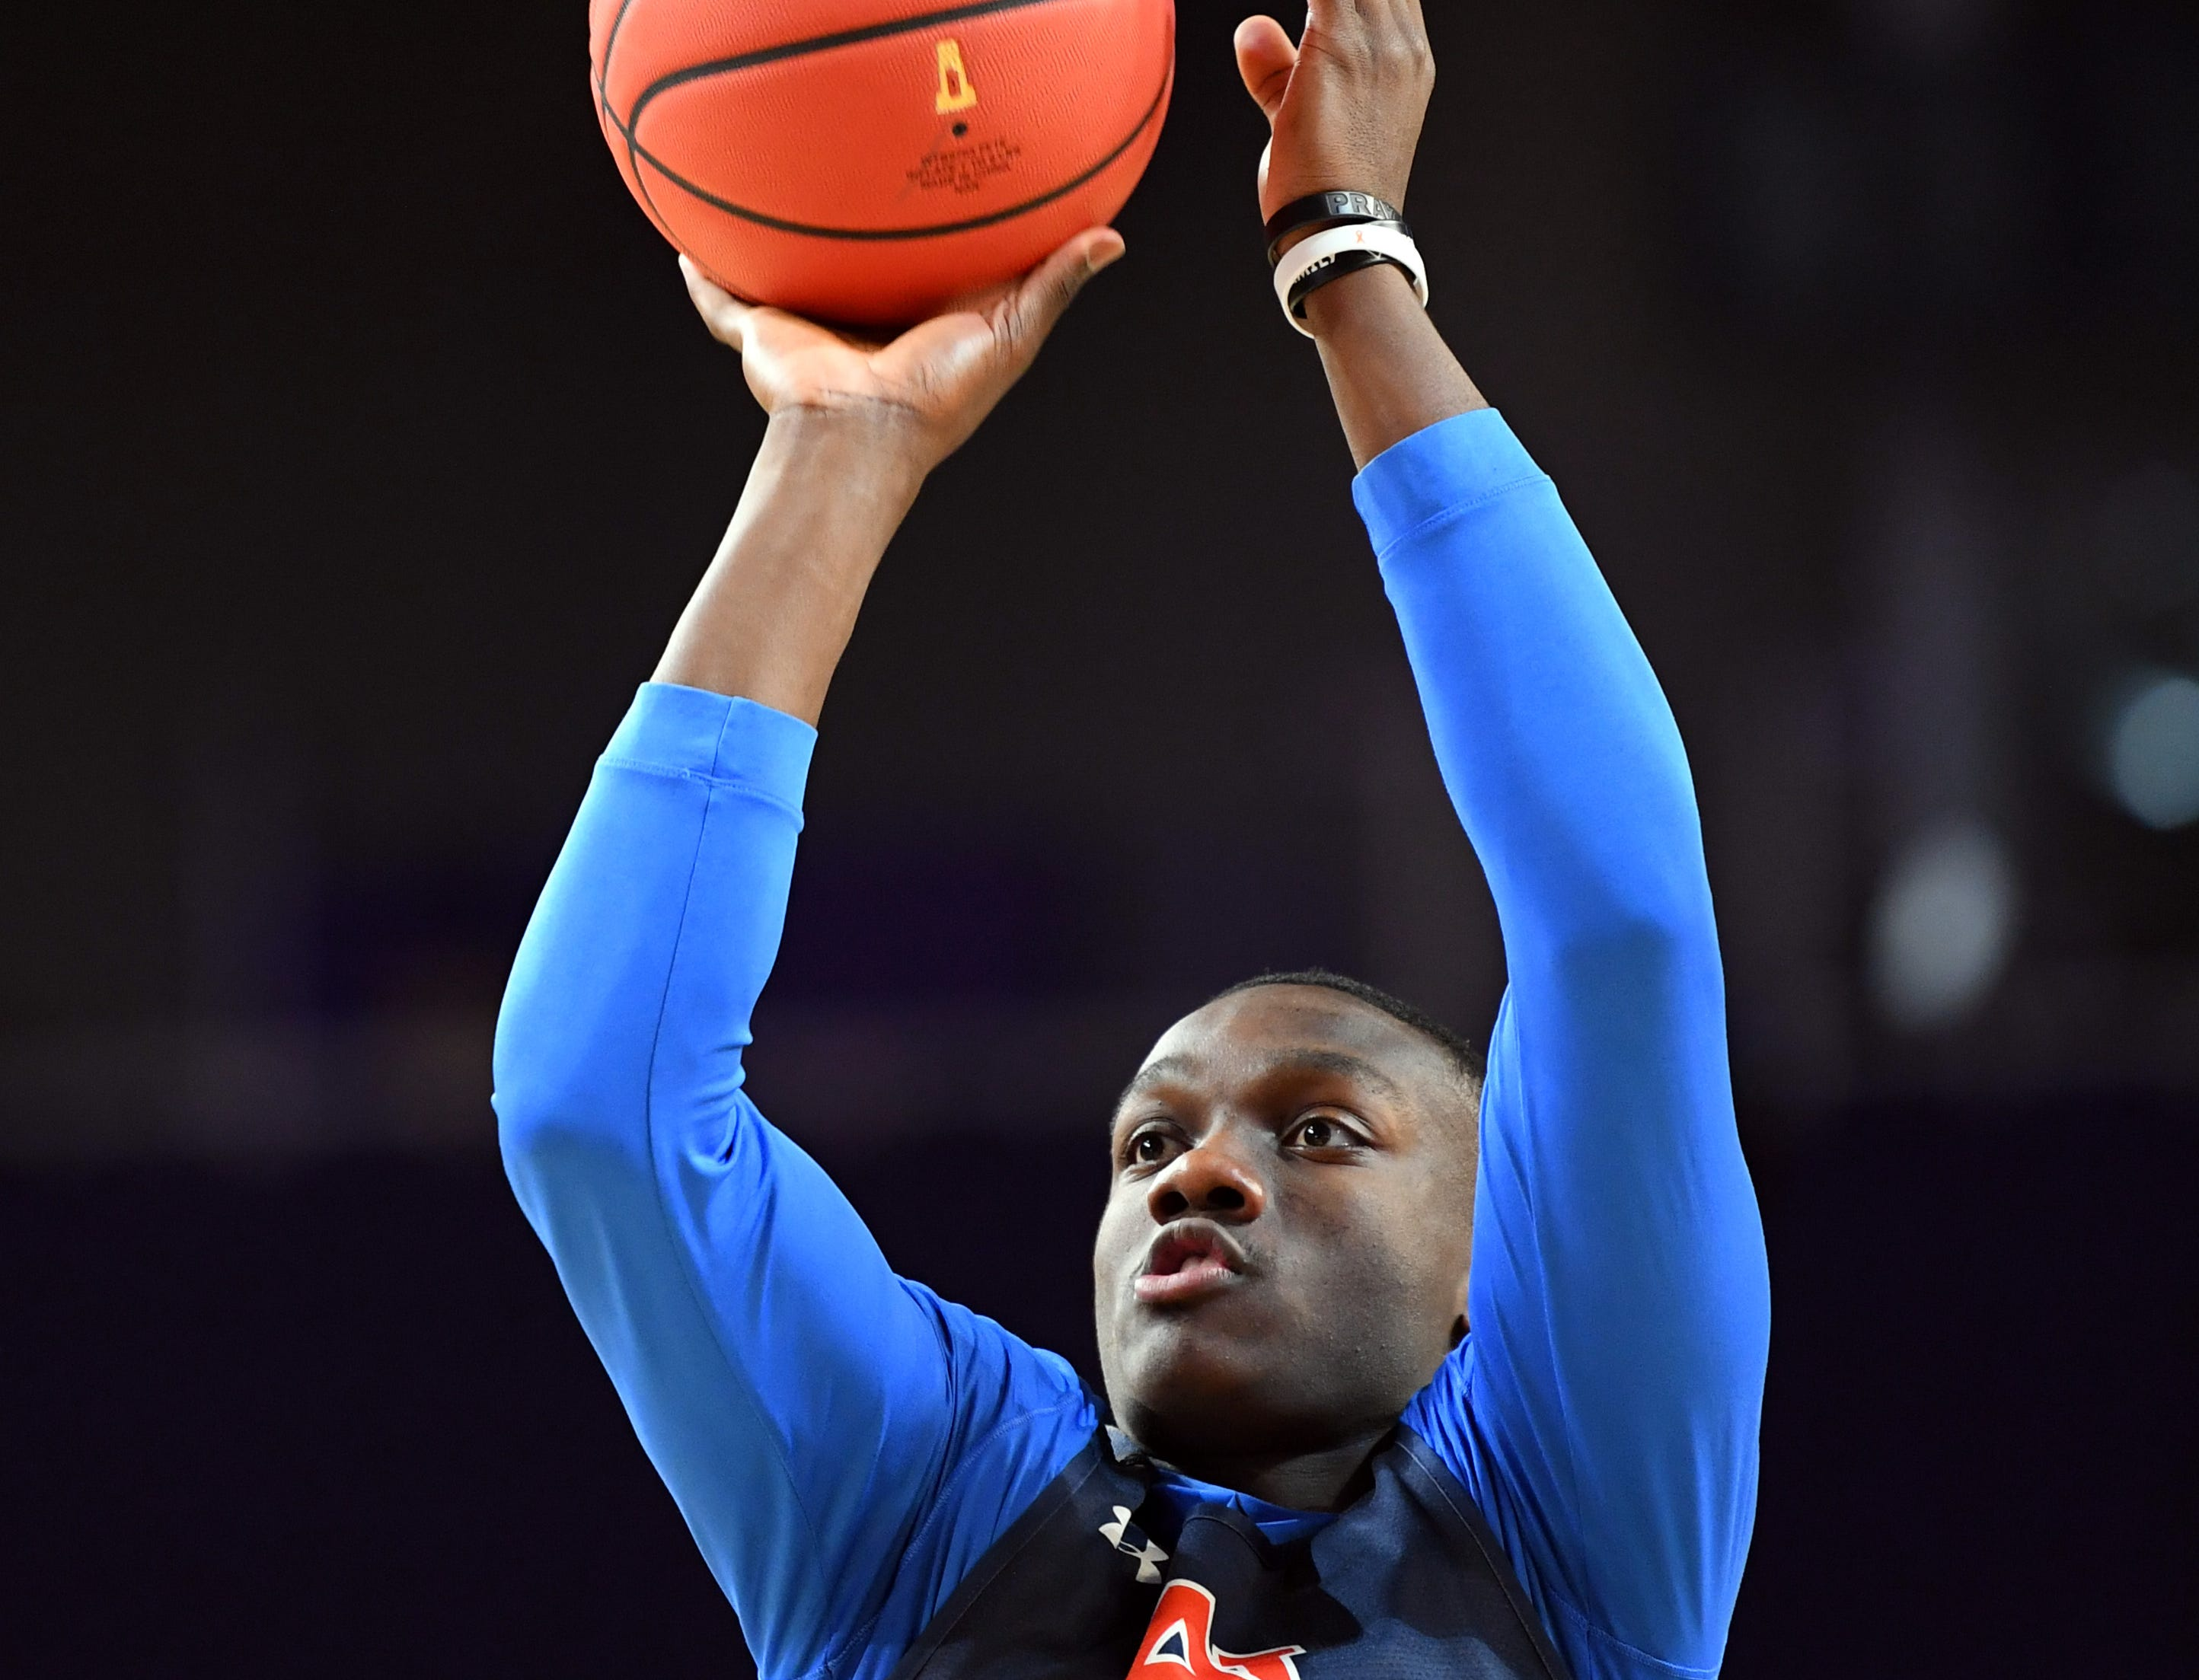 Apr 5, 2019; Minneapolis, MN, USA; Auburn Tigers guard Jared Harper (1) during practice for the 2019 men's Final Four at US Bank Stadium. Mandatory Credit: Bob Donnan-USA TODAY Sports